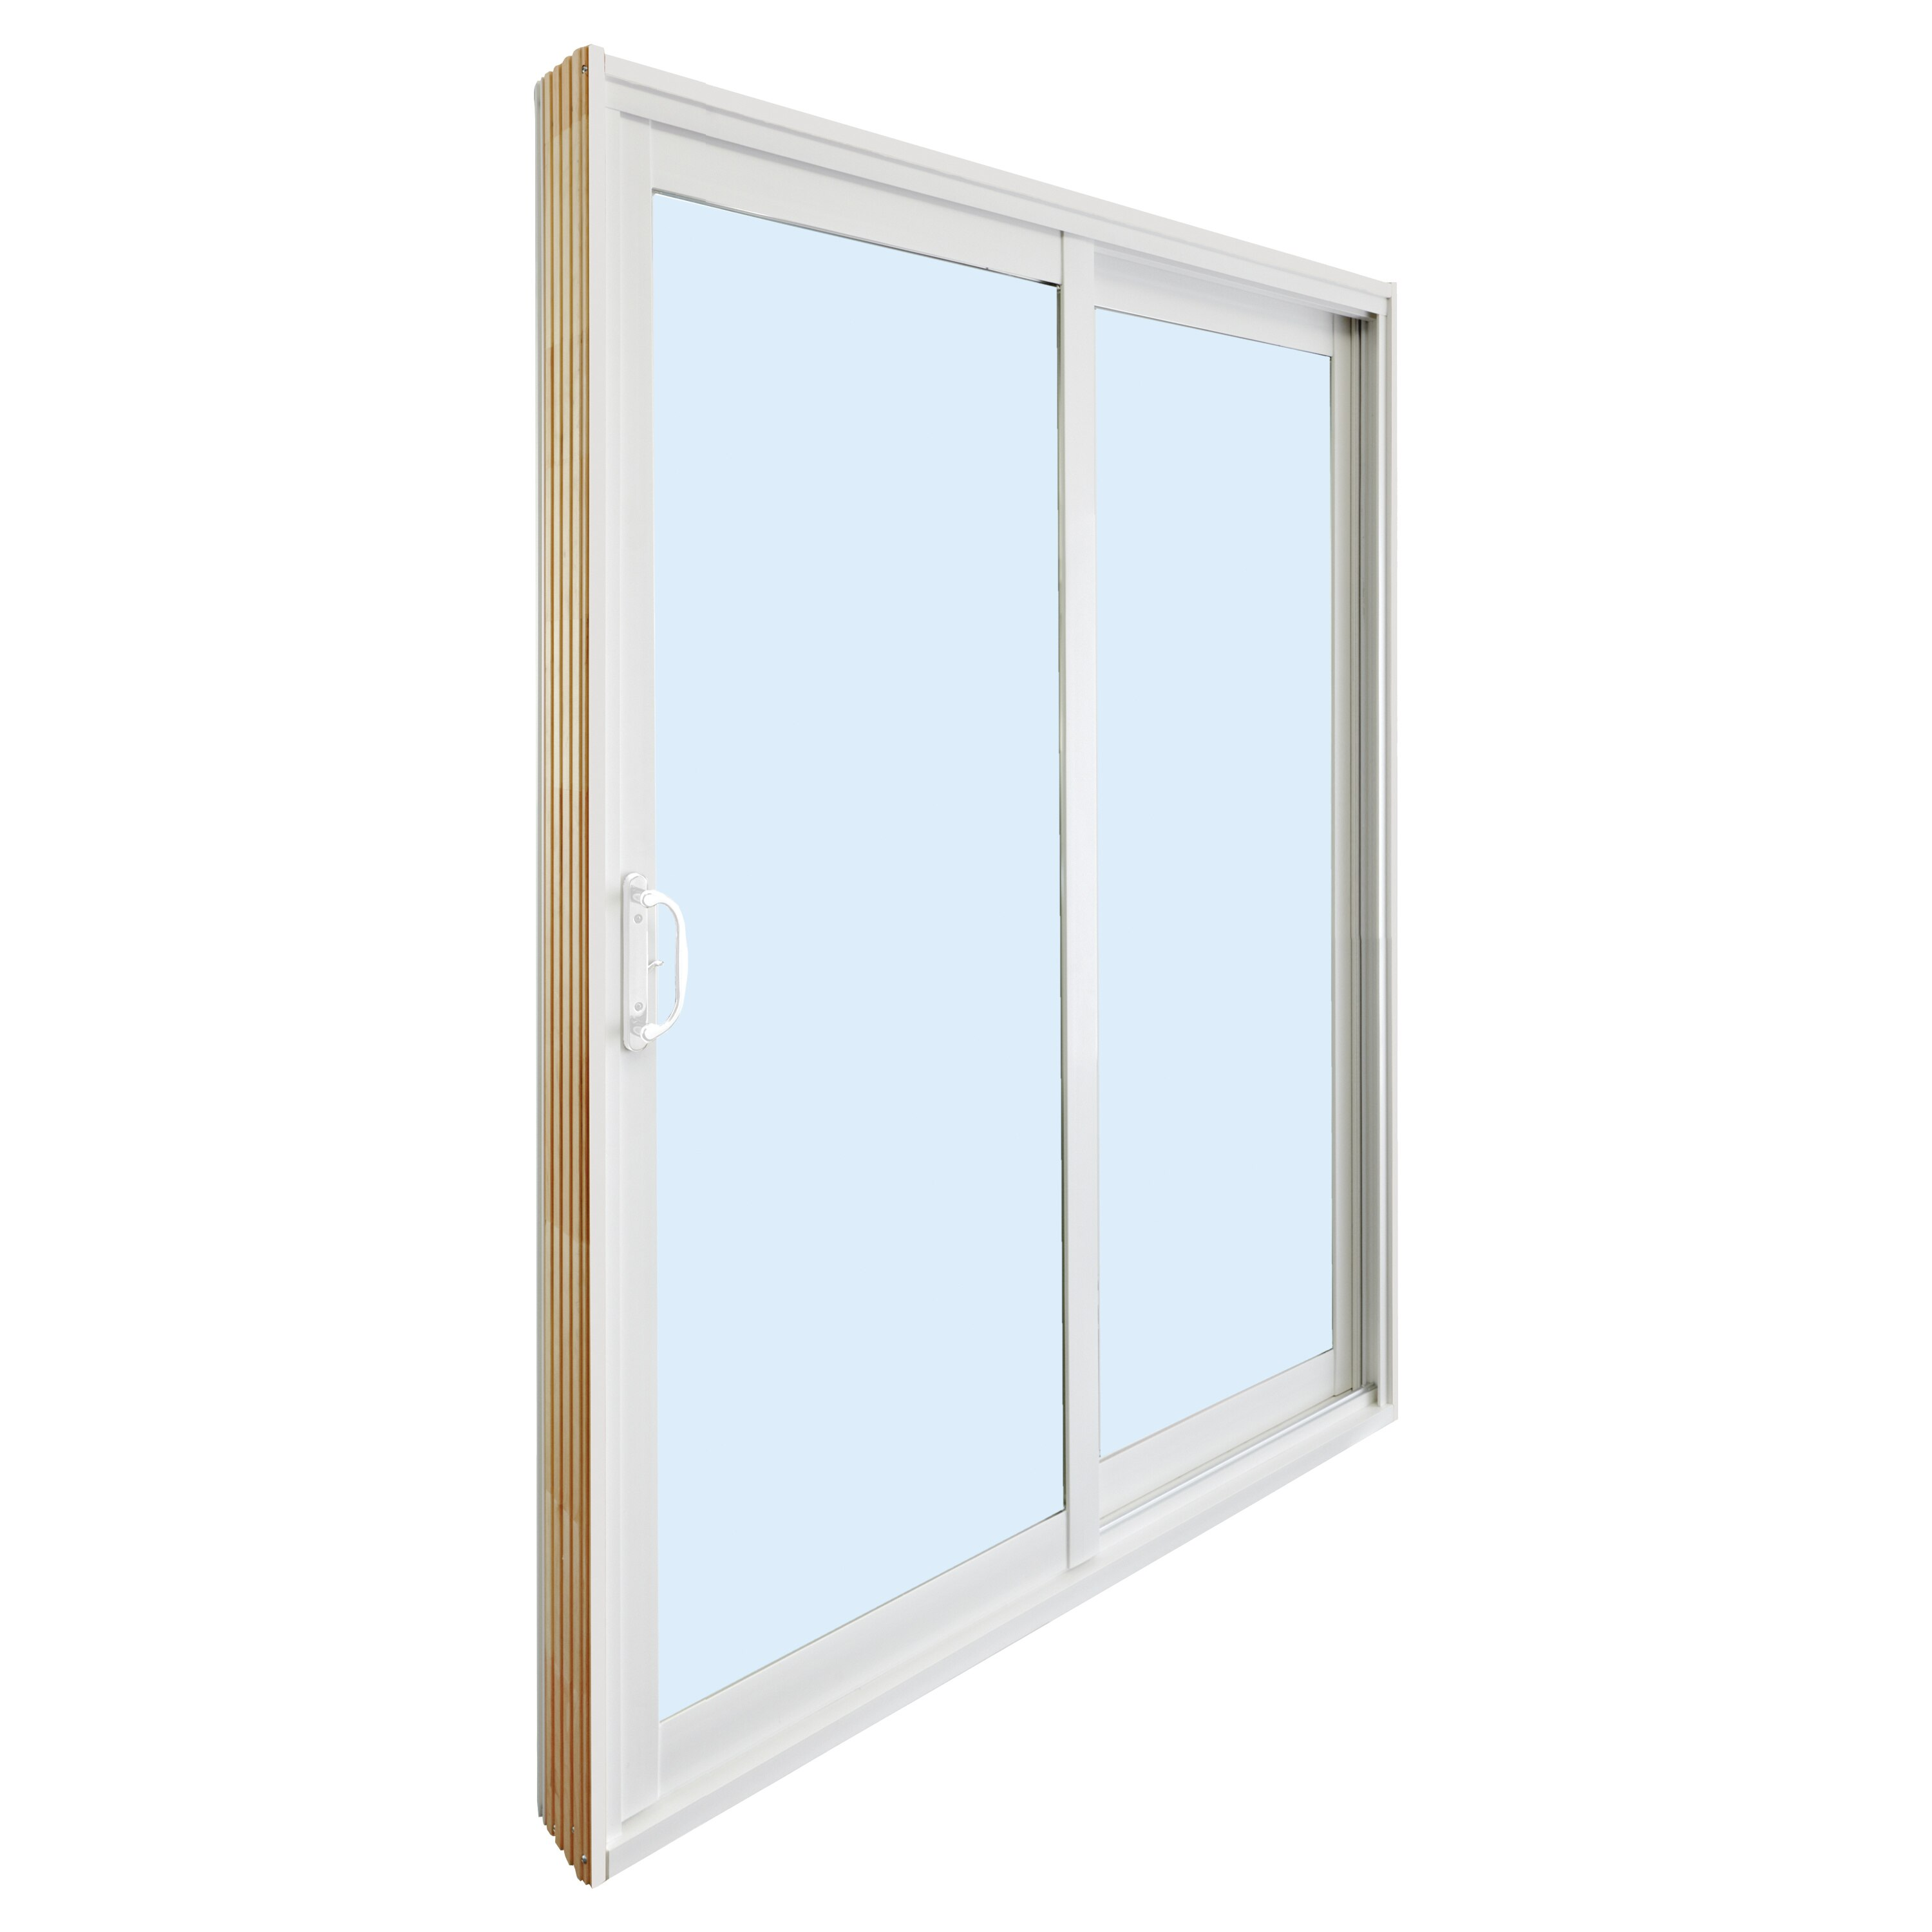 Stanley Tools - Double Sliding Patio Door with LowE Glass - 500001